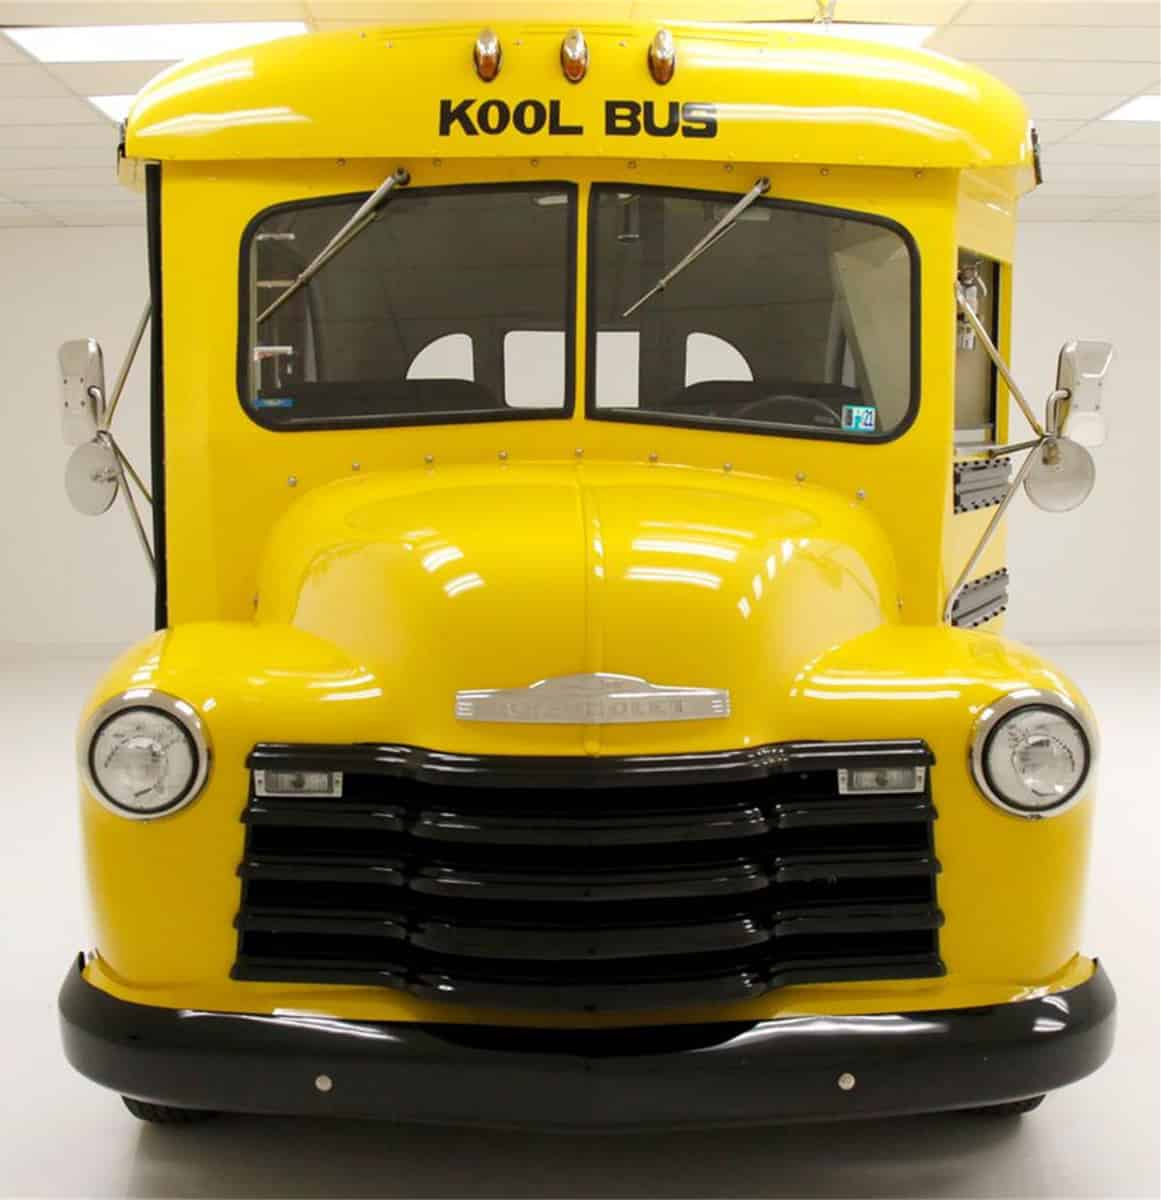 bus, Pick of the Day: 'Too Kool for School' bus, ClassicCars.com Journal